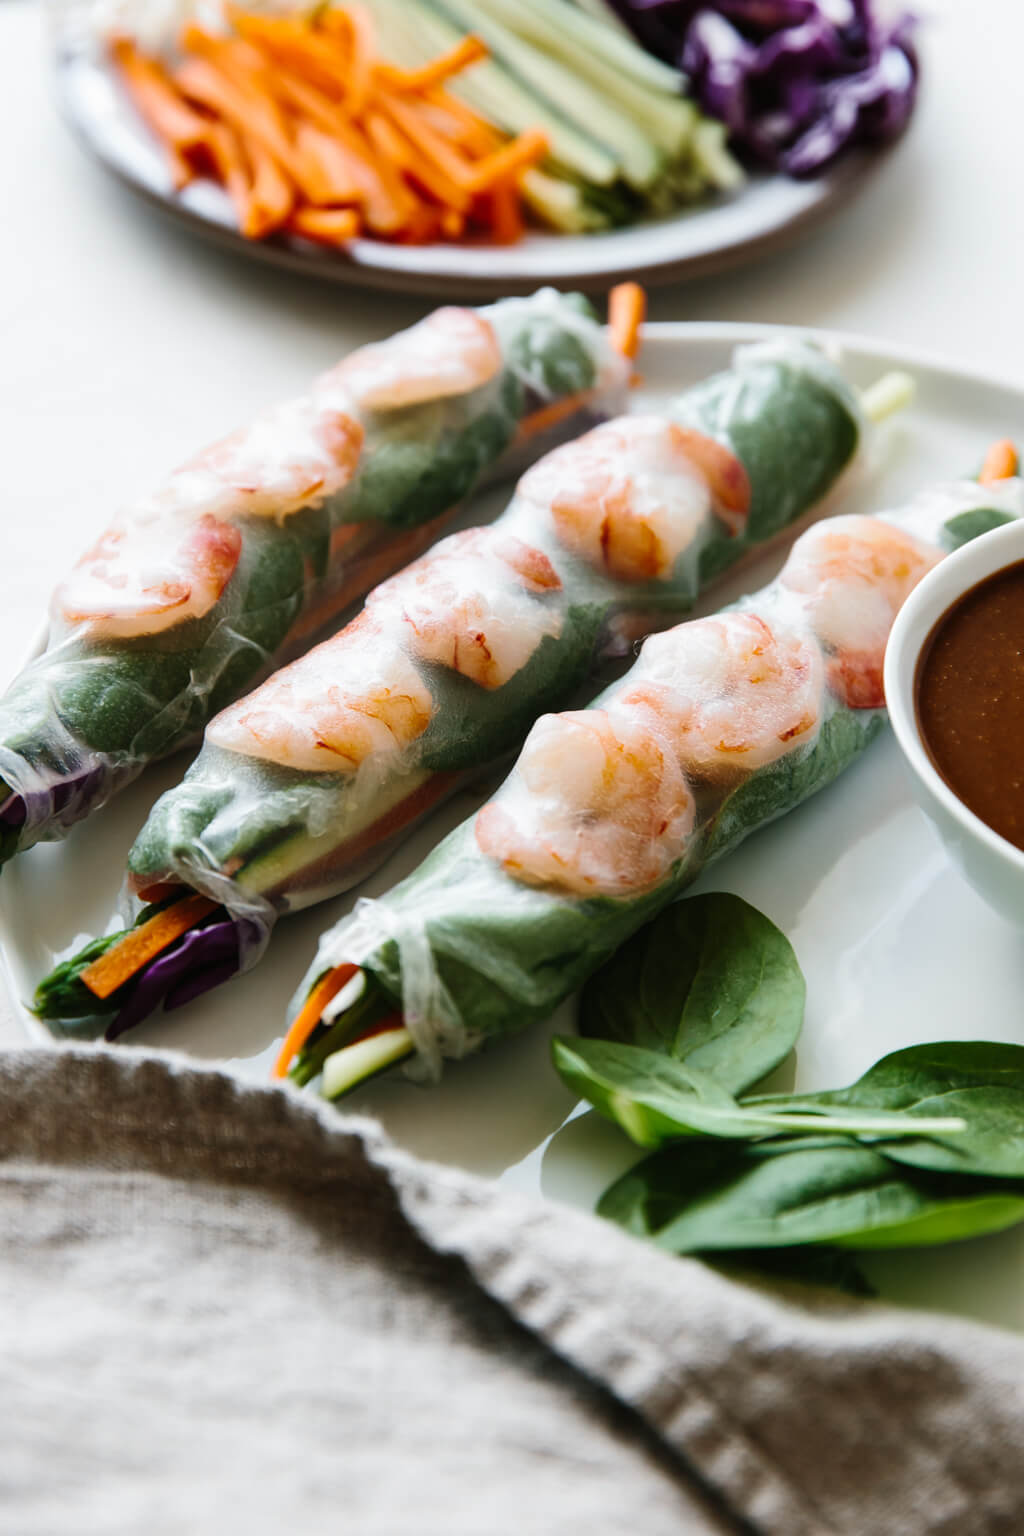 Vietnamese spring rolls on a plate next to dipping sauce.